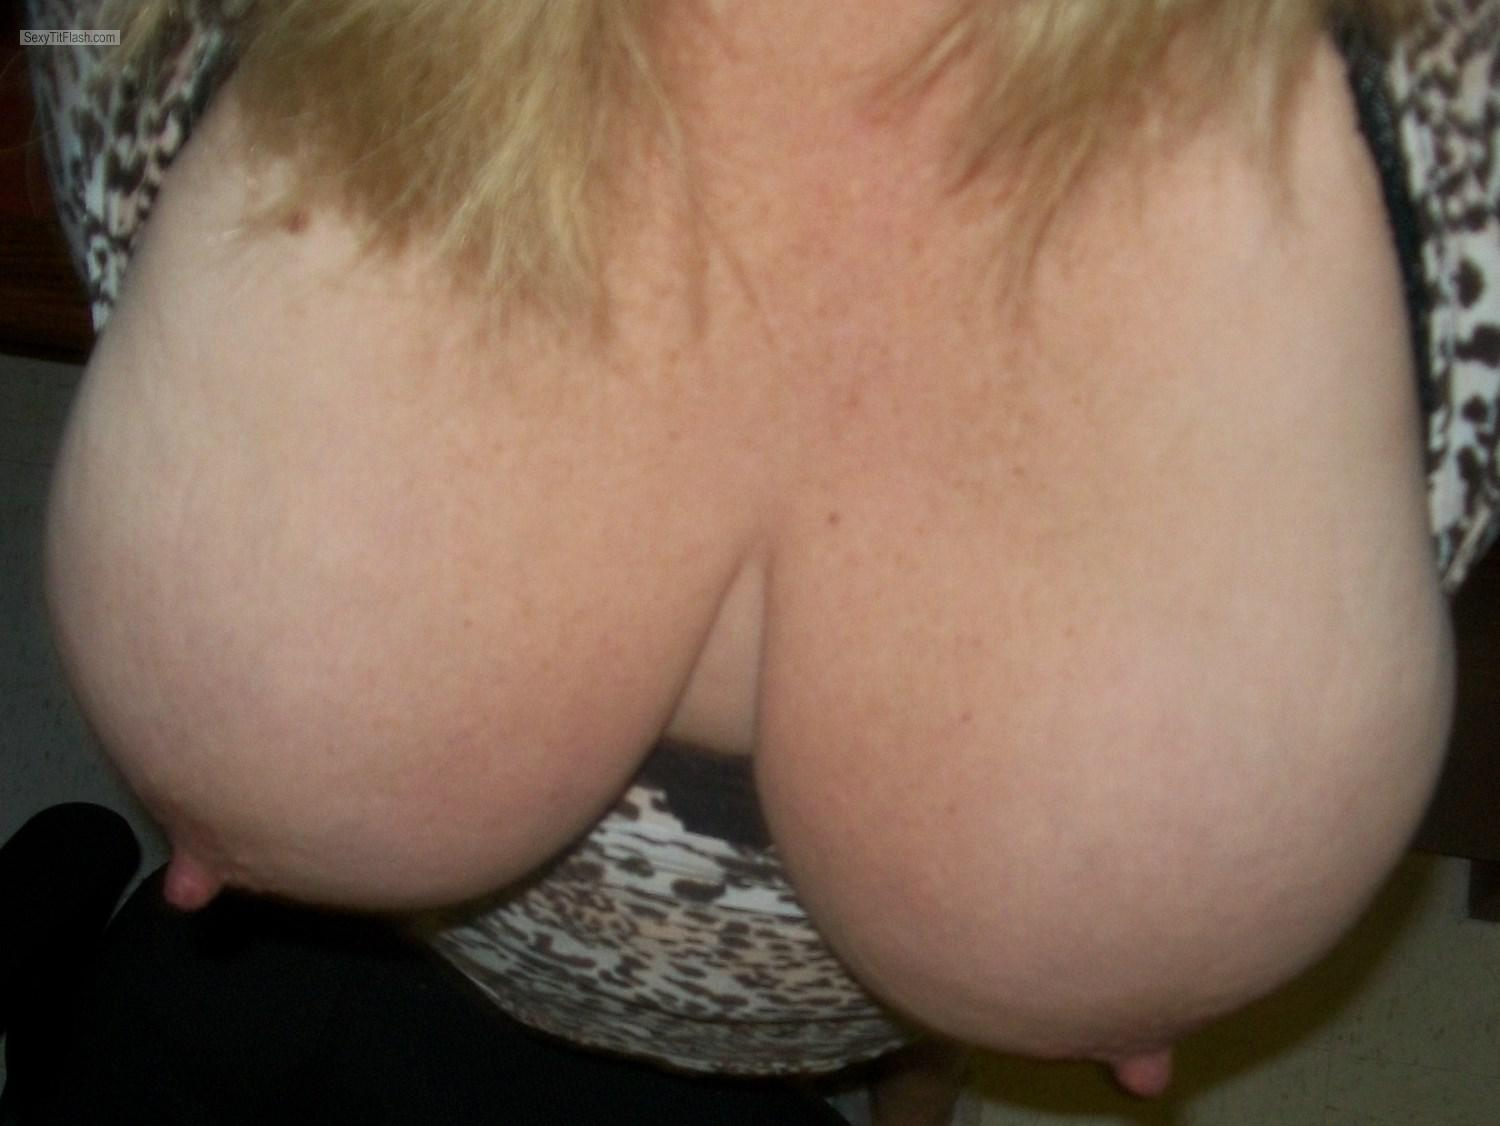 Tit Flash: My Extremely Big Tits (Selfie) - KTX from United States